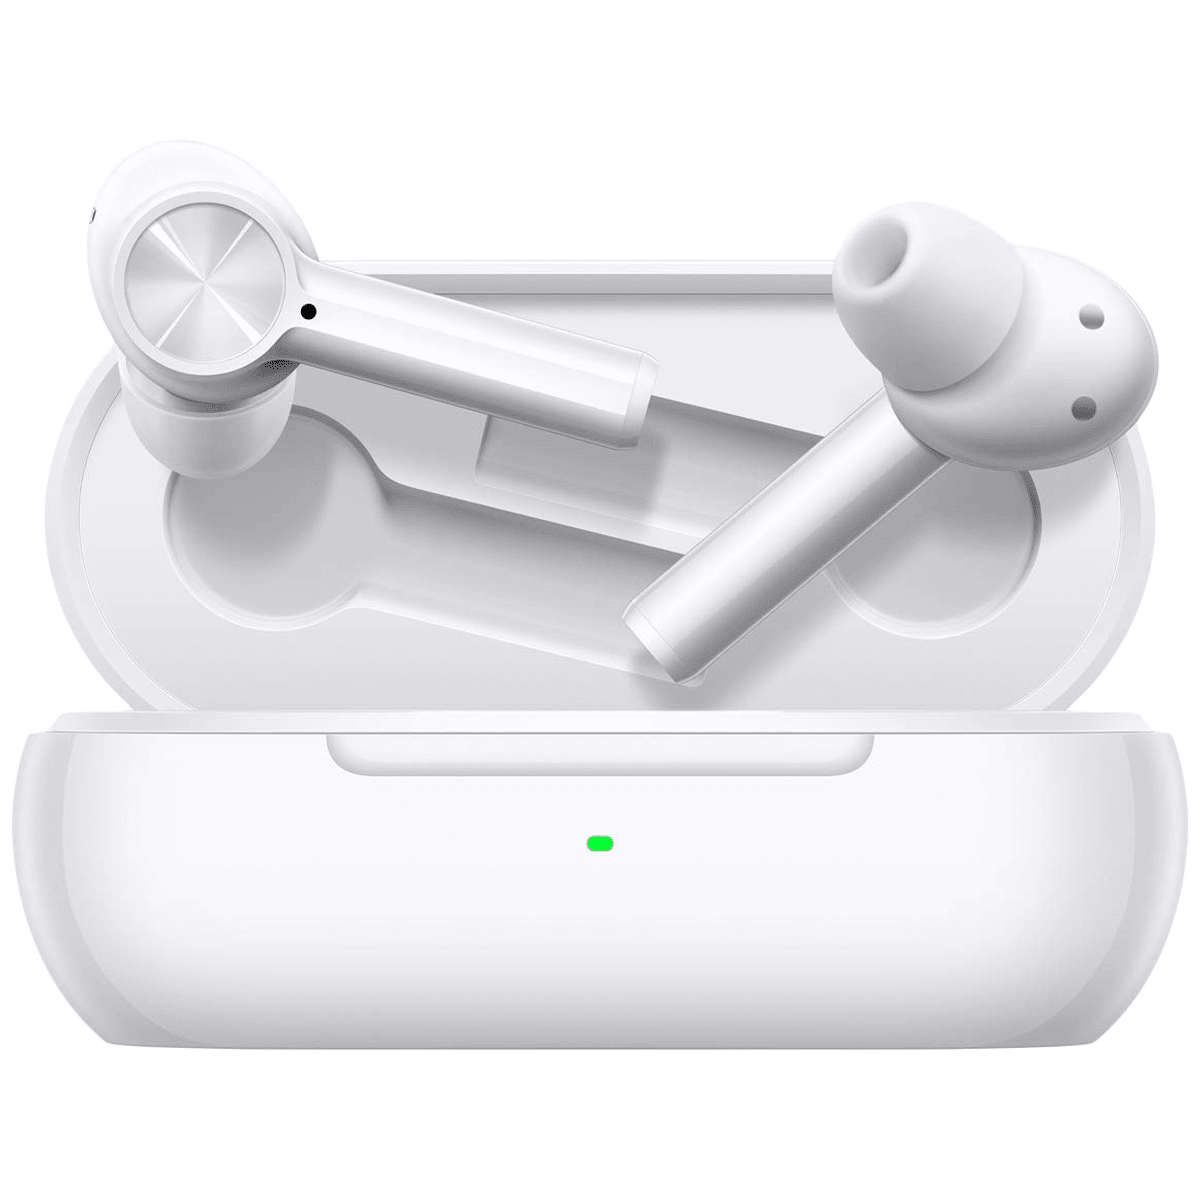 OnePlus Buds Z In-Ear Truly Wireless Earbuds with Mic (Bluetooth 5.0, Quick Pair, E502A, White)